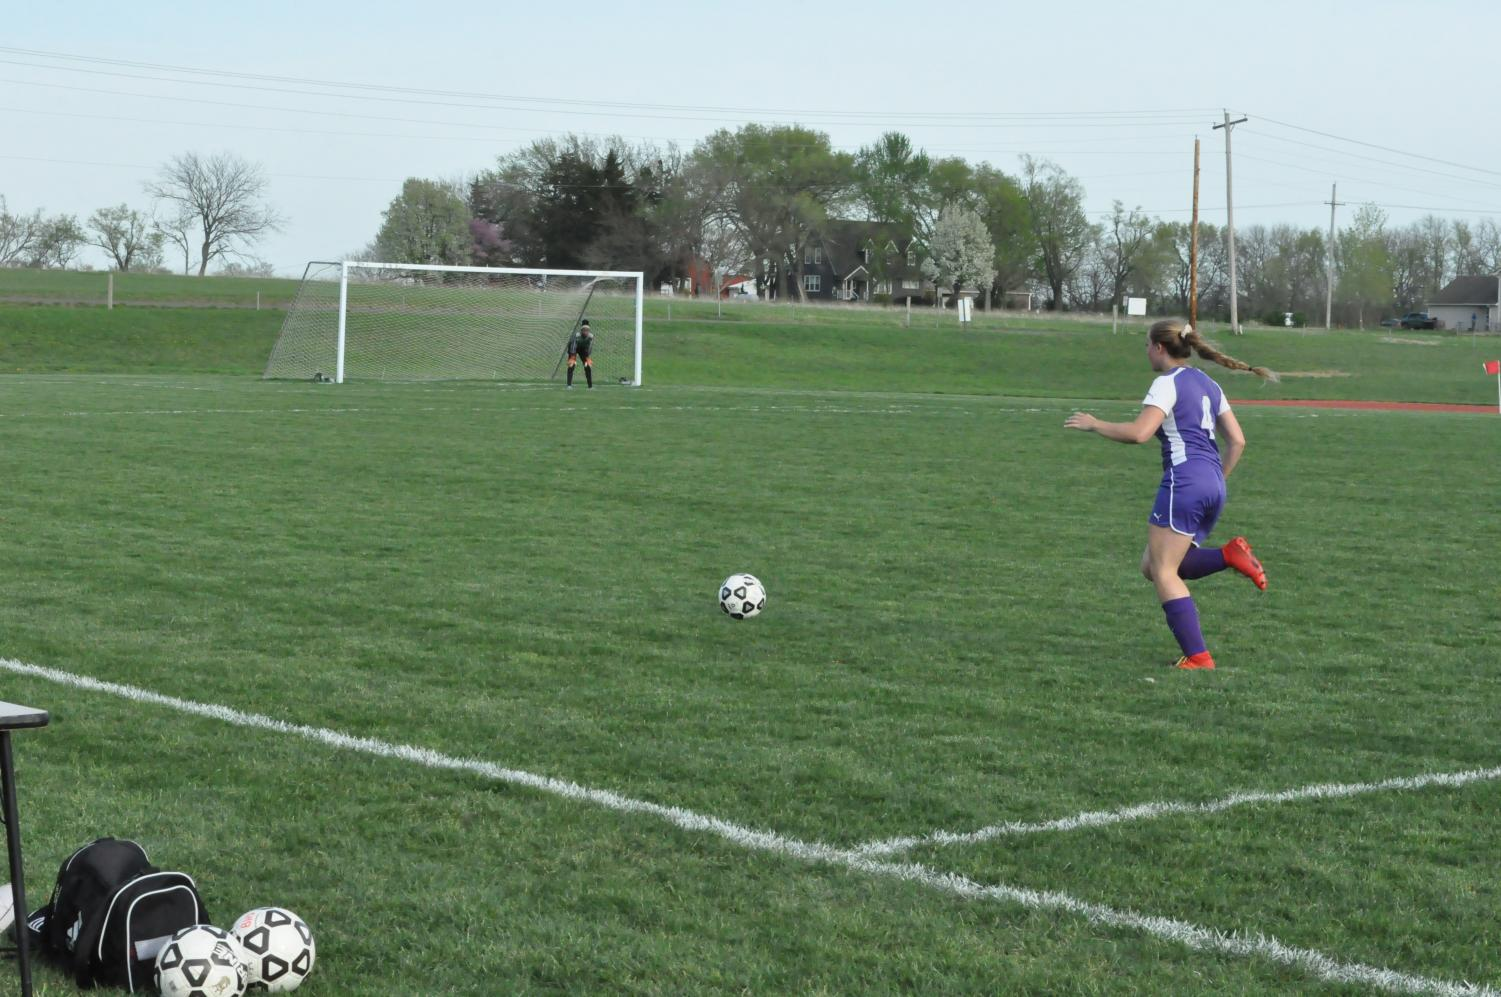 Cambria Crowe is taking the ball down to score.